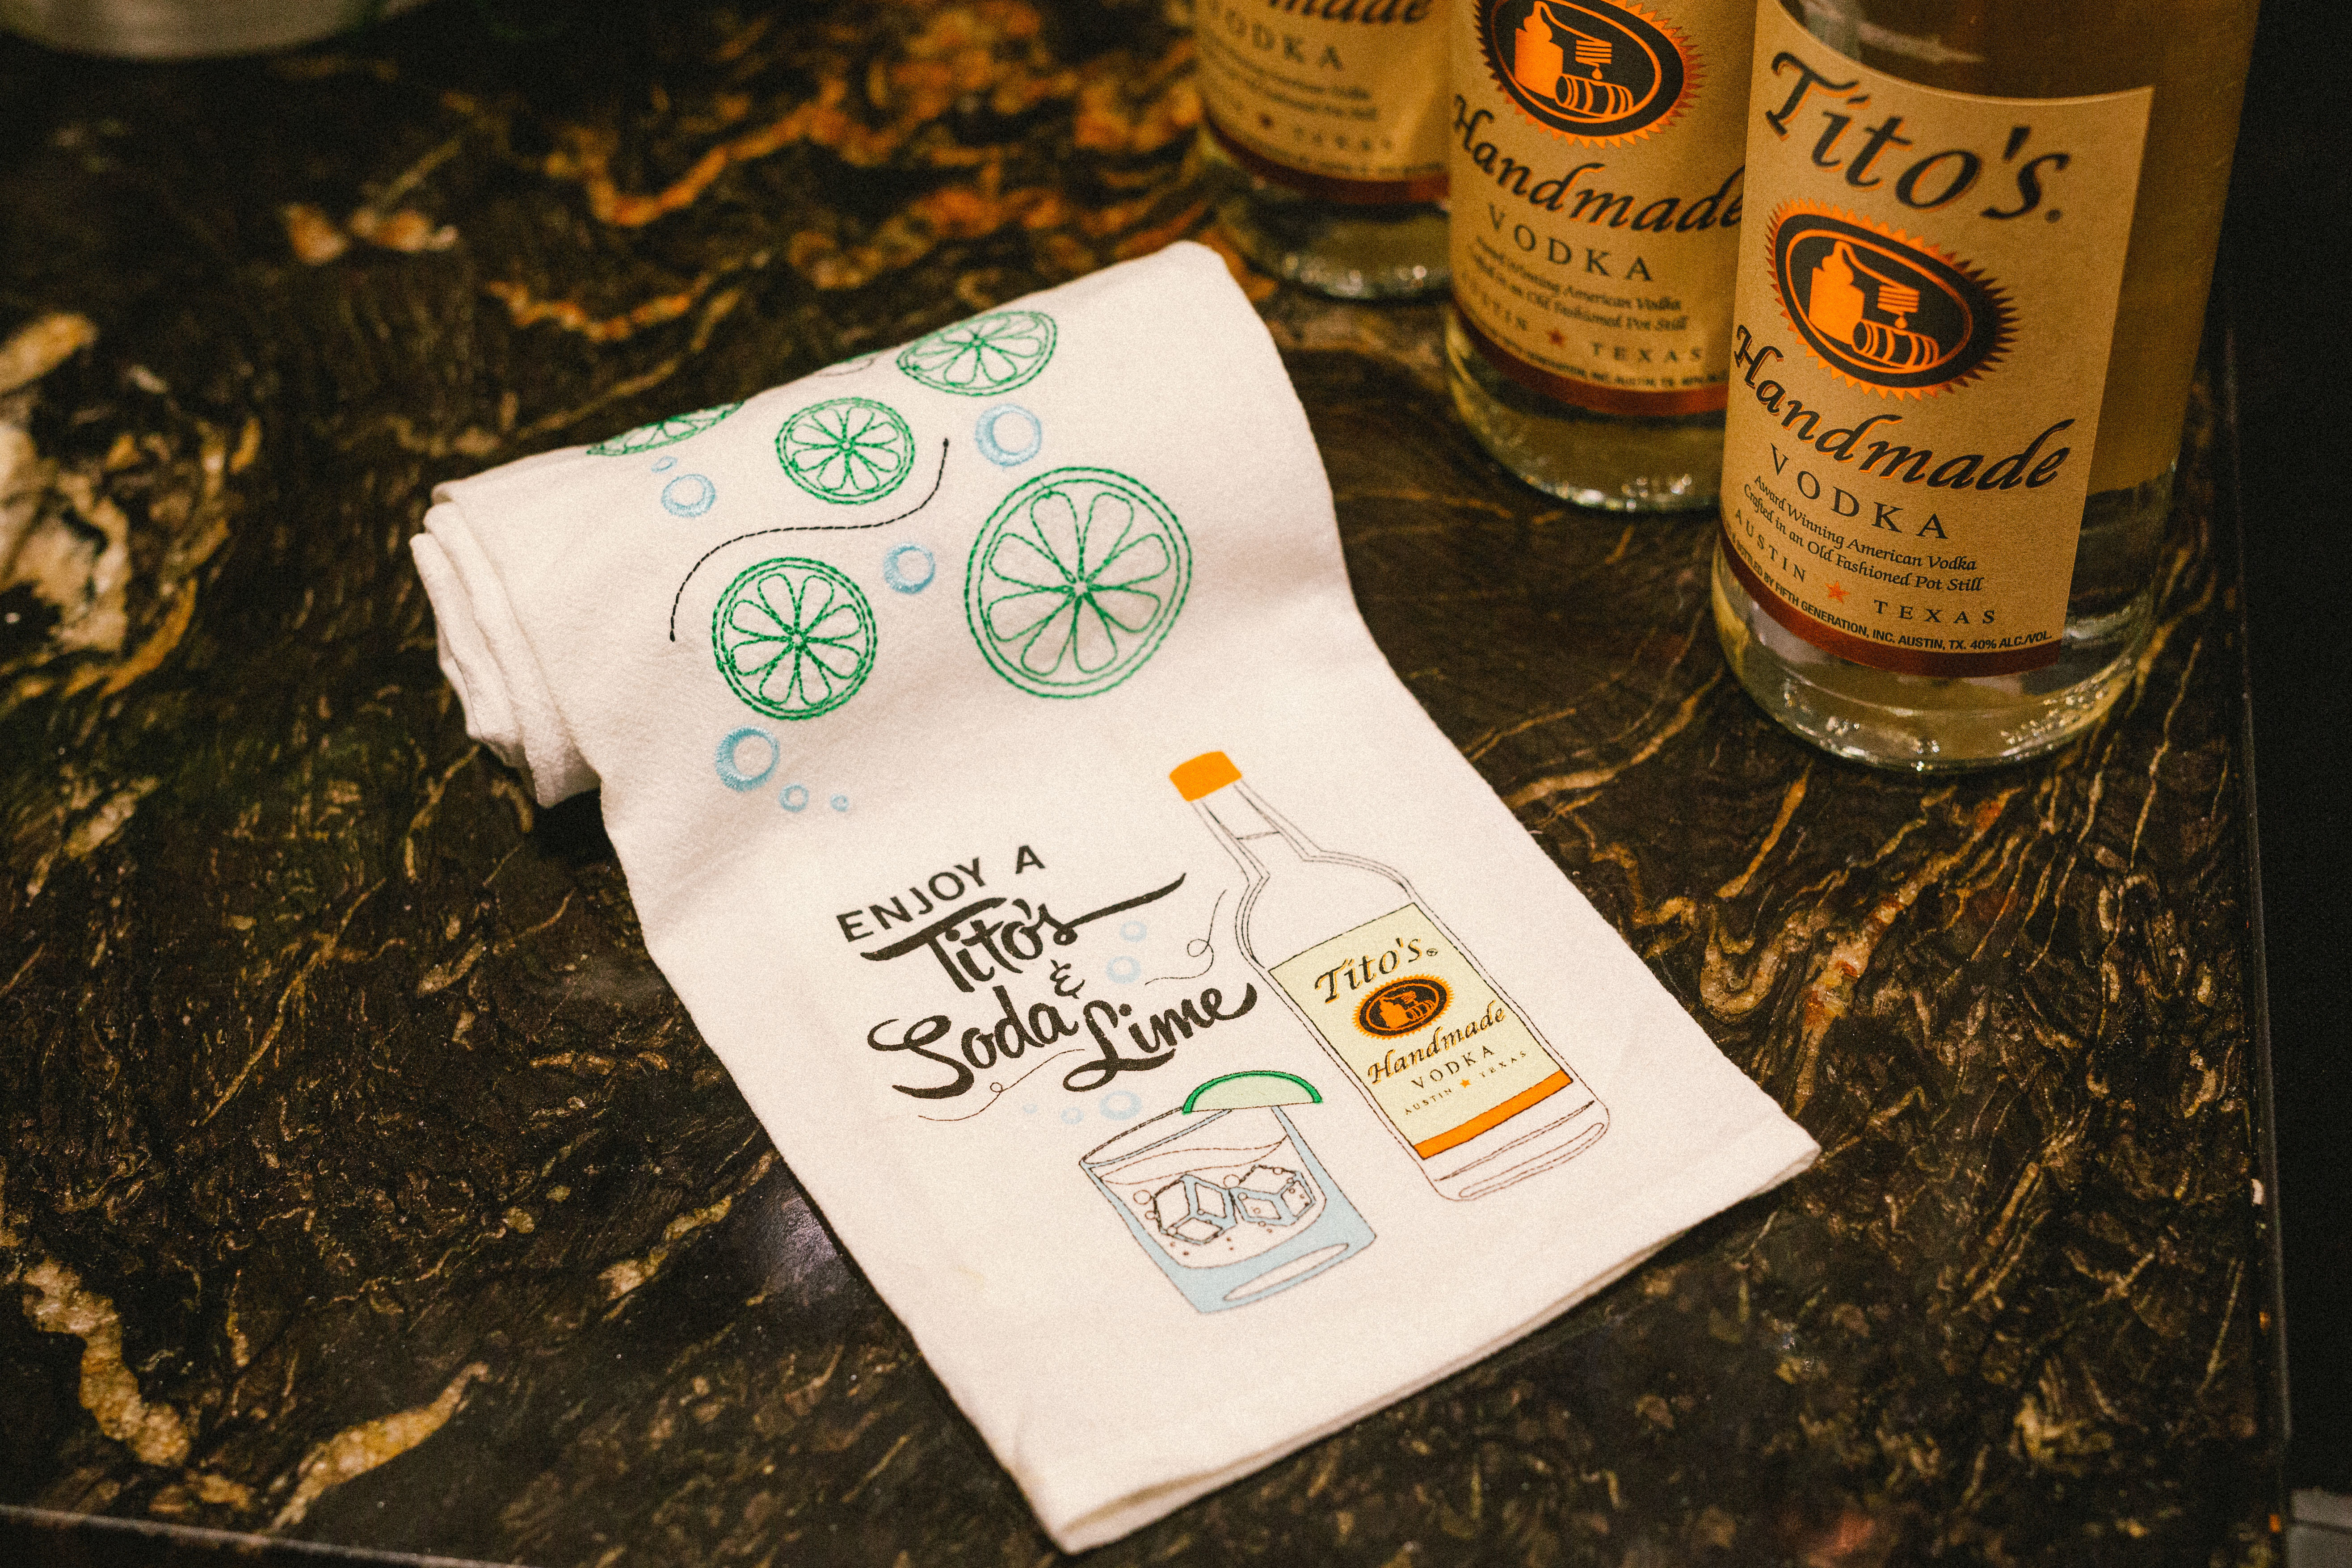 White tea towel with printed Enjoy a Tito's Soda & Lime design and embroidered limes next to bottles of Tito's Vodka